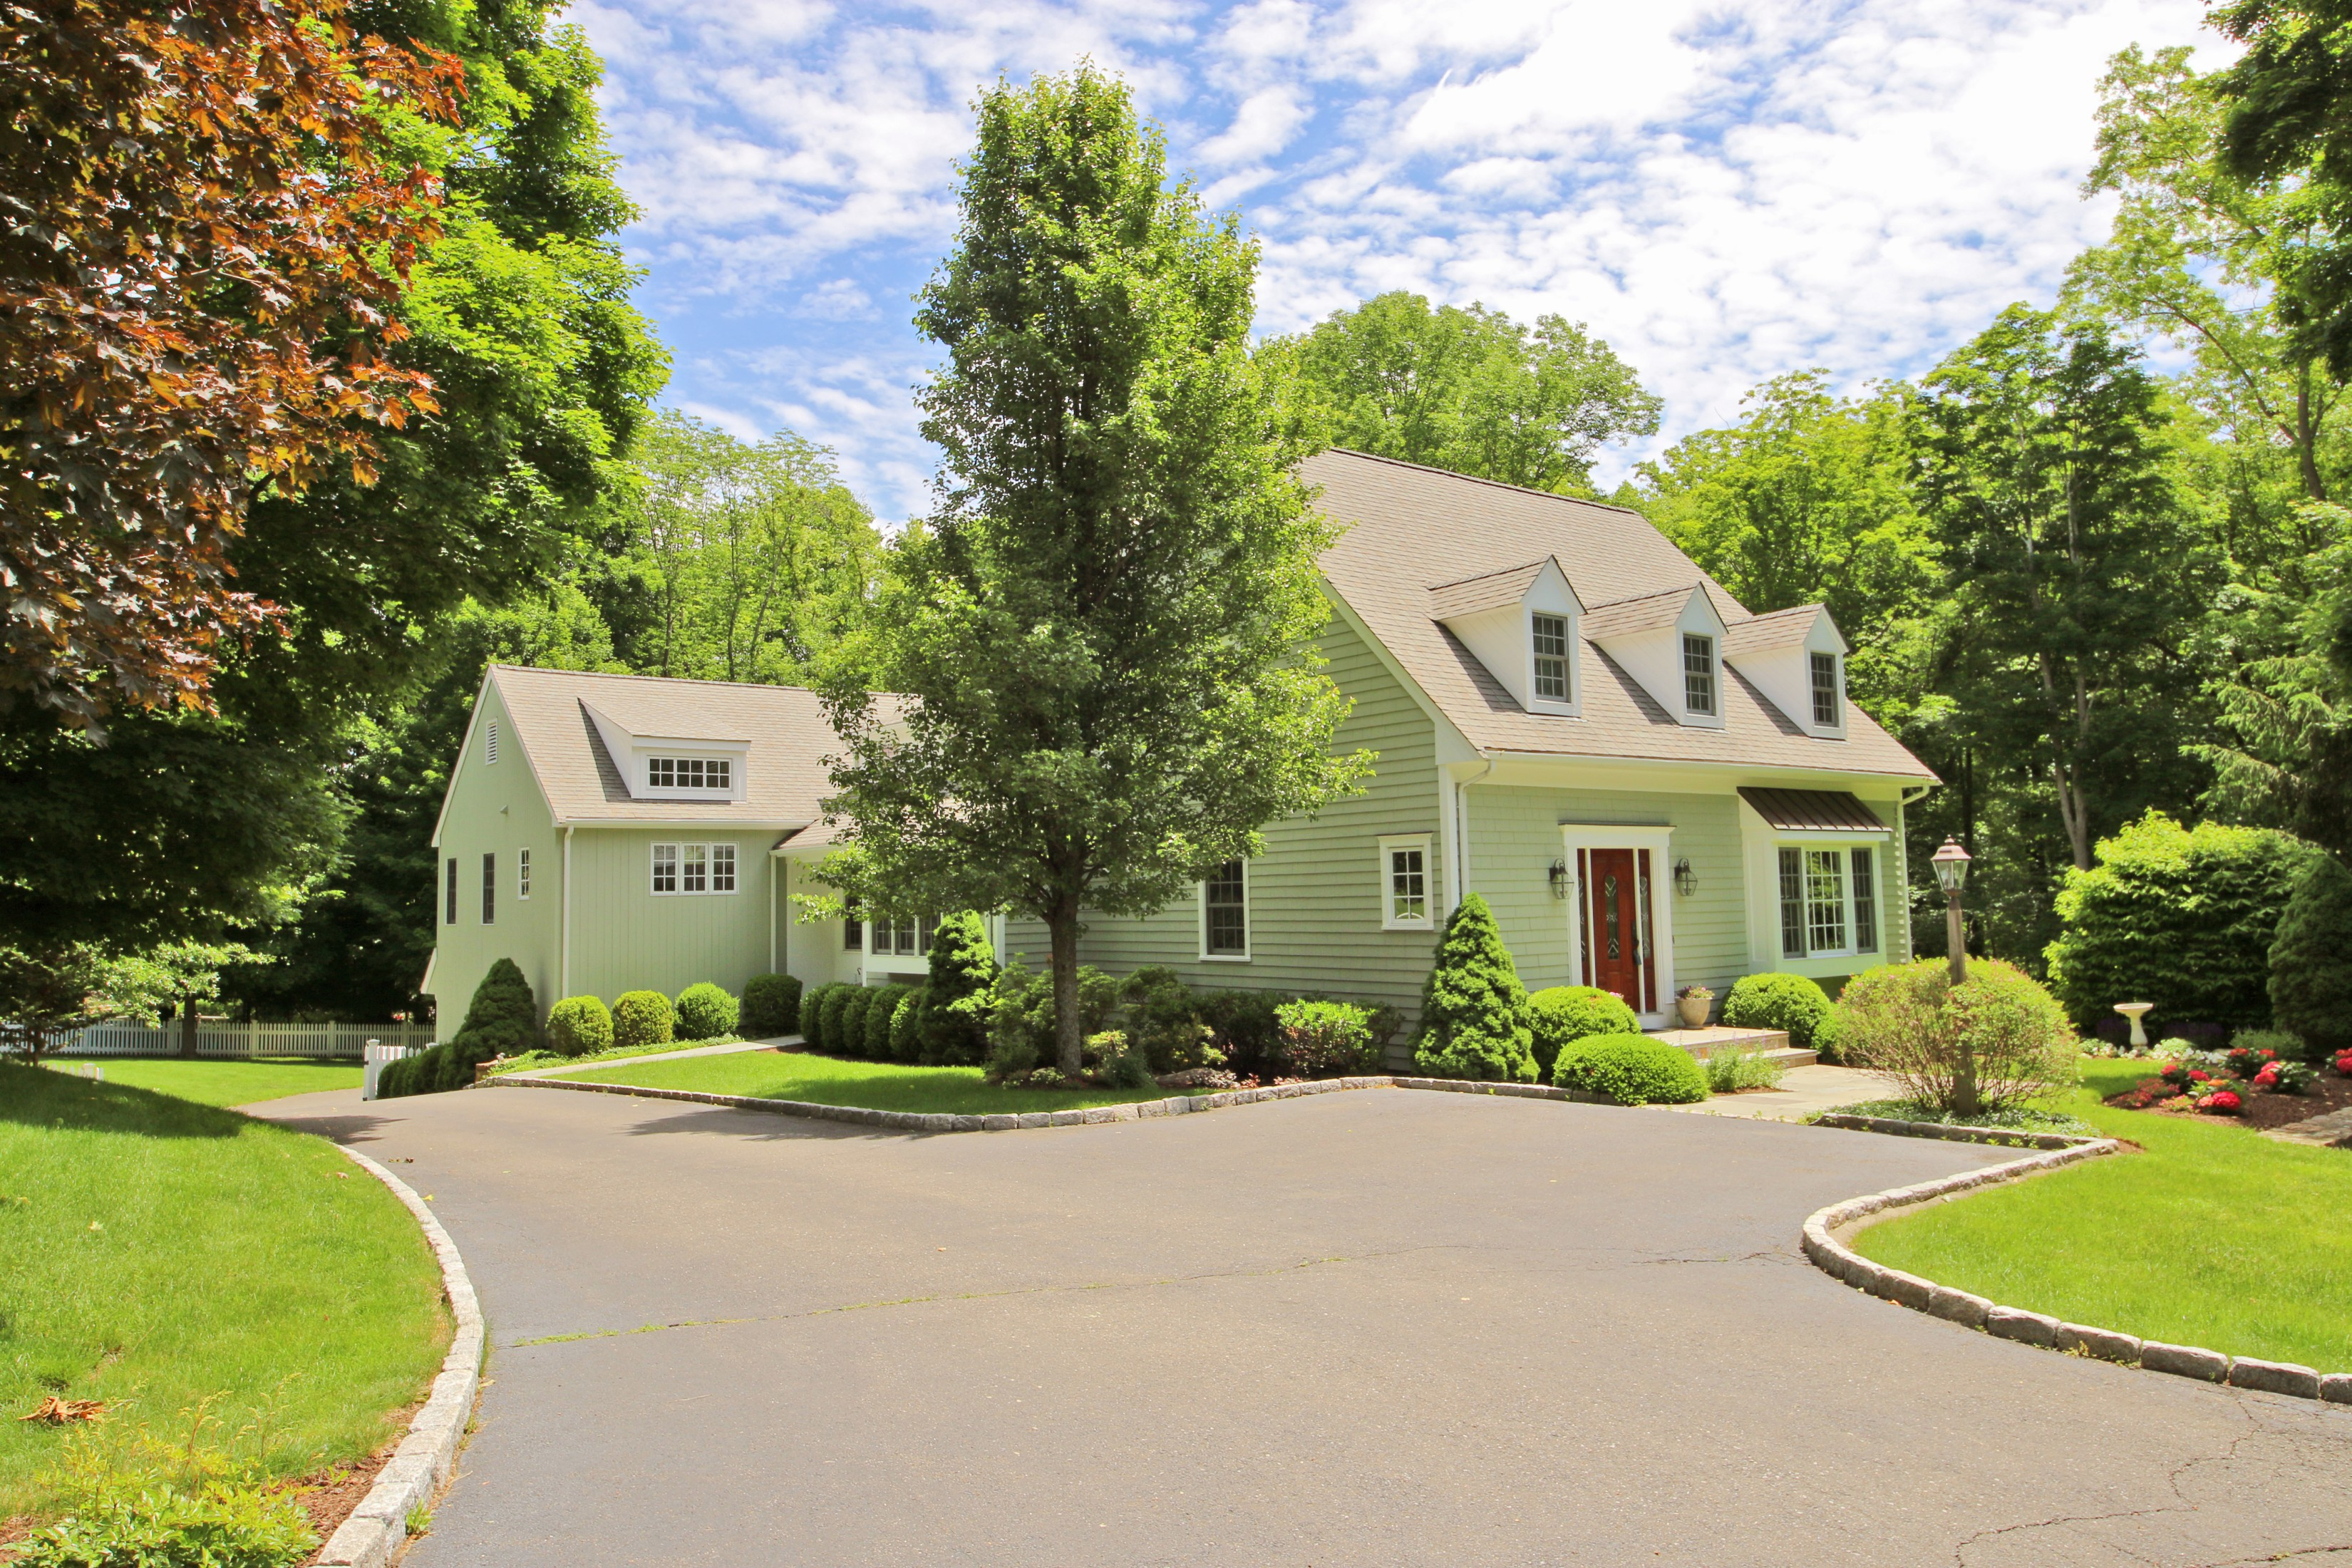 Single Family Home for Sale at Top In-town Location 22 Oak Knoll Road Ridgefield, Connecticut 06877 United States